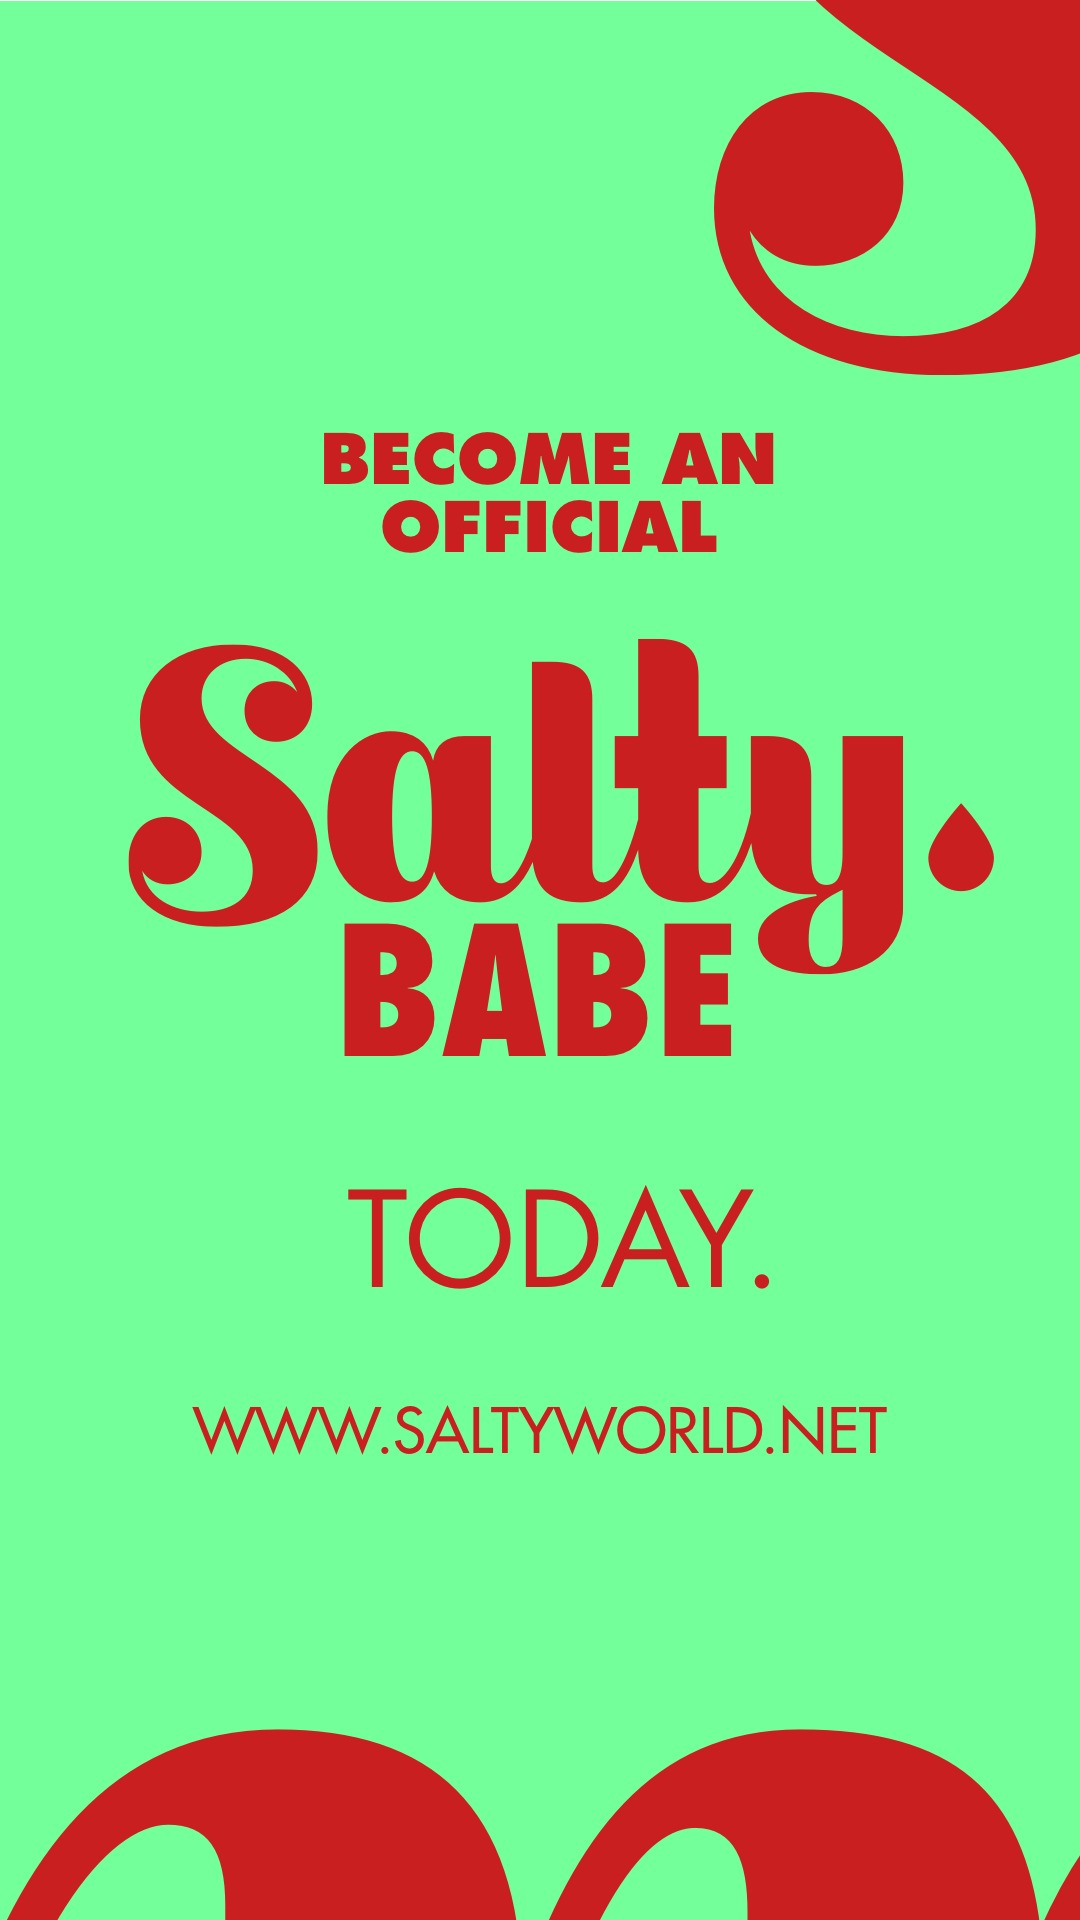 Become an Official Salty Babe Today. www.saltyworld.net